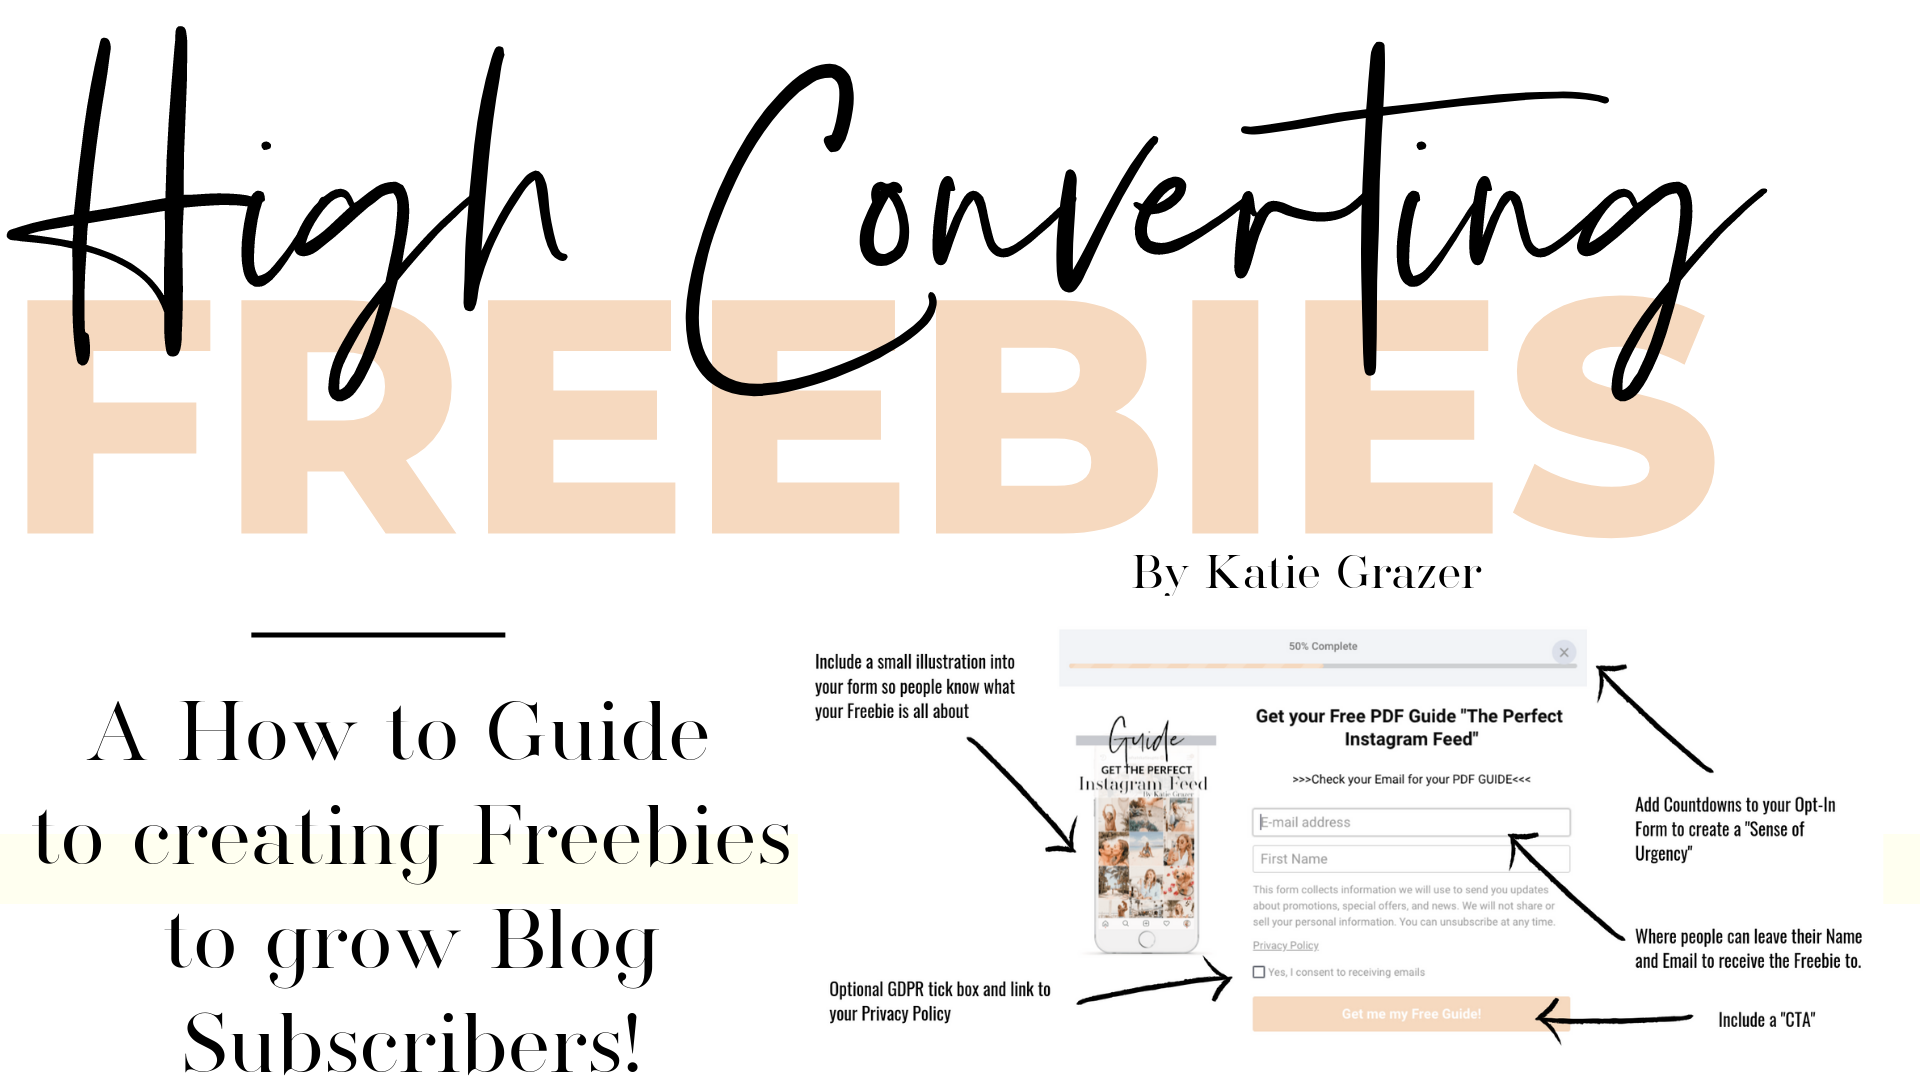 High Converting Freebie